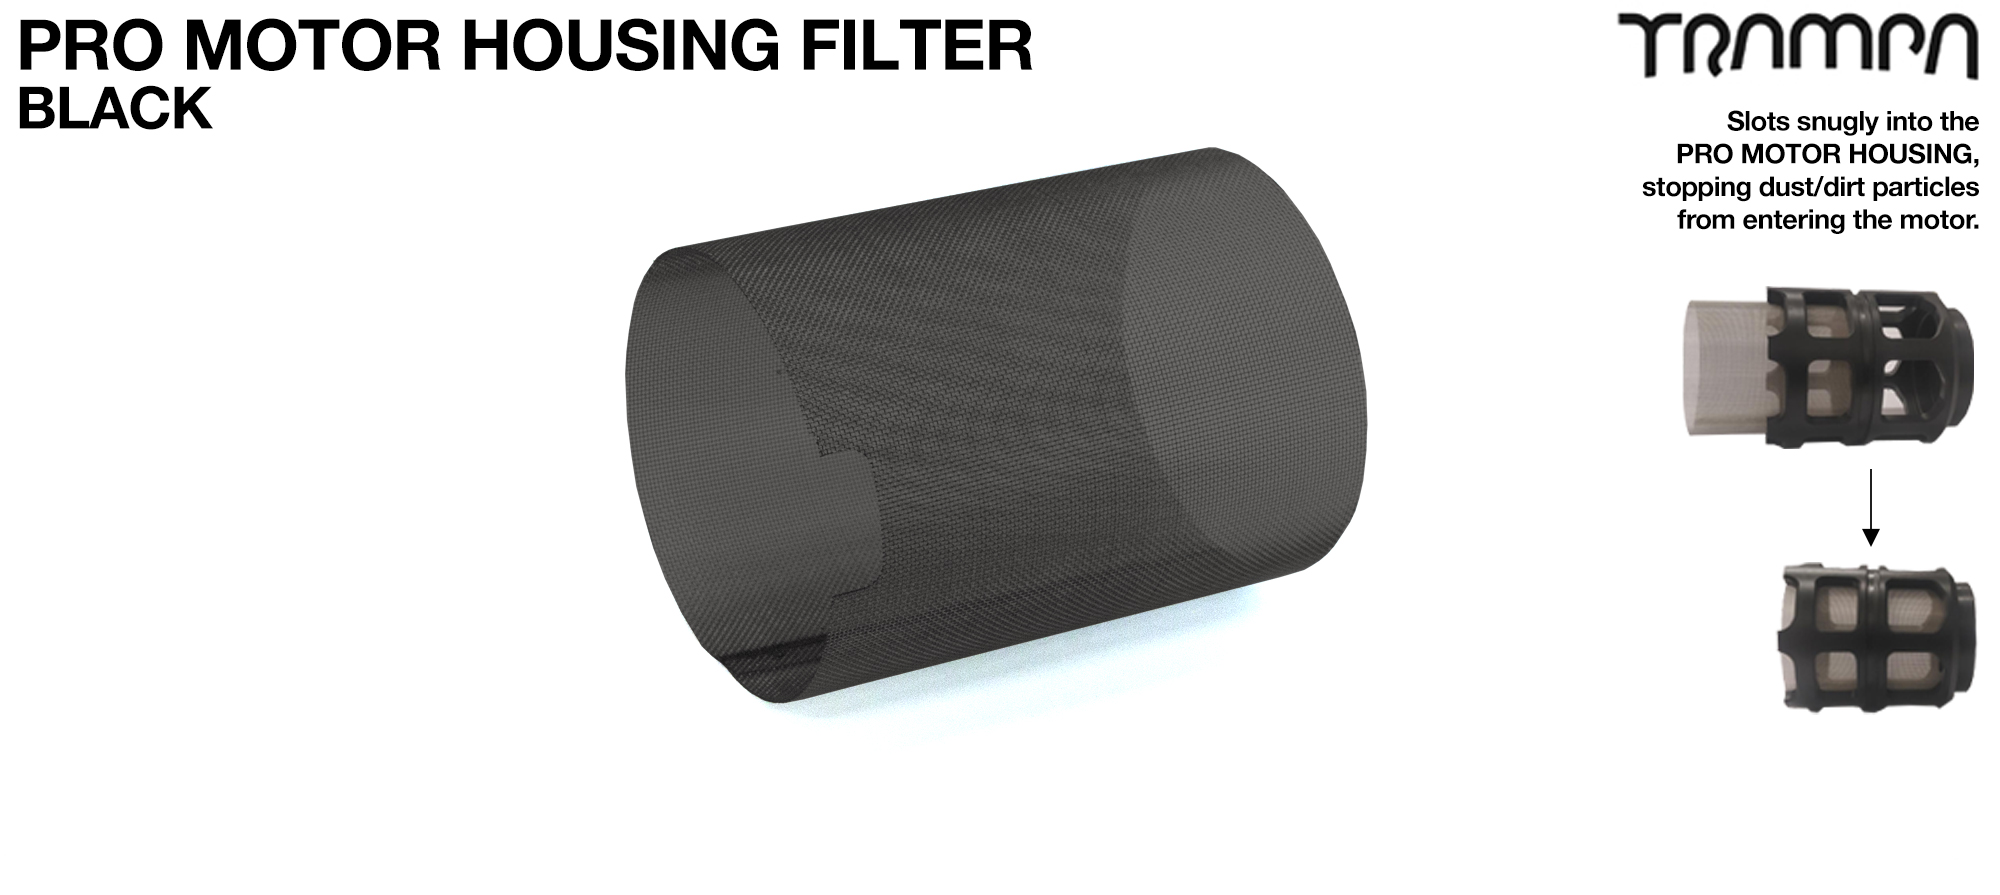 Motor Protection Cover Stainless Steel MESH FILTER - BLACK